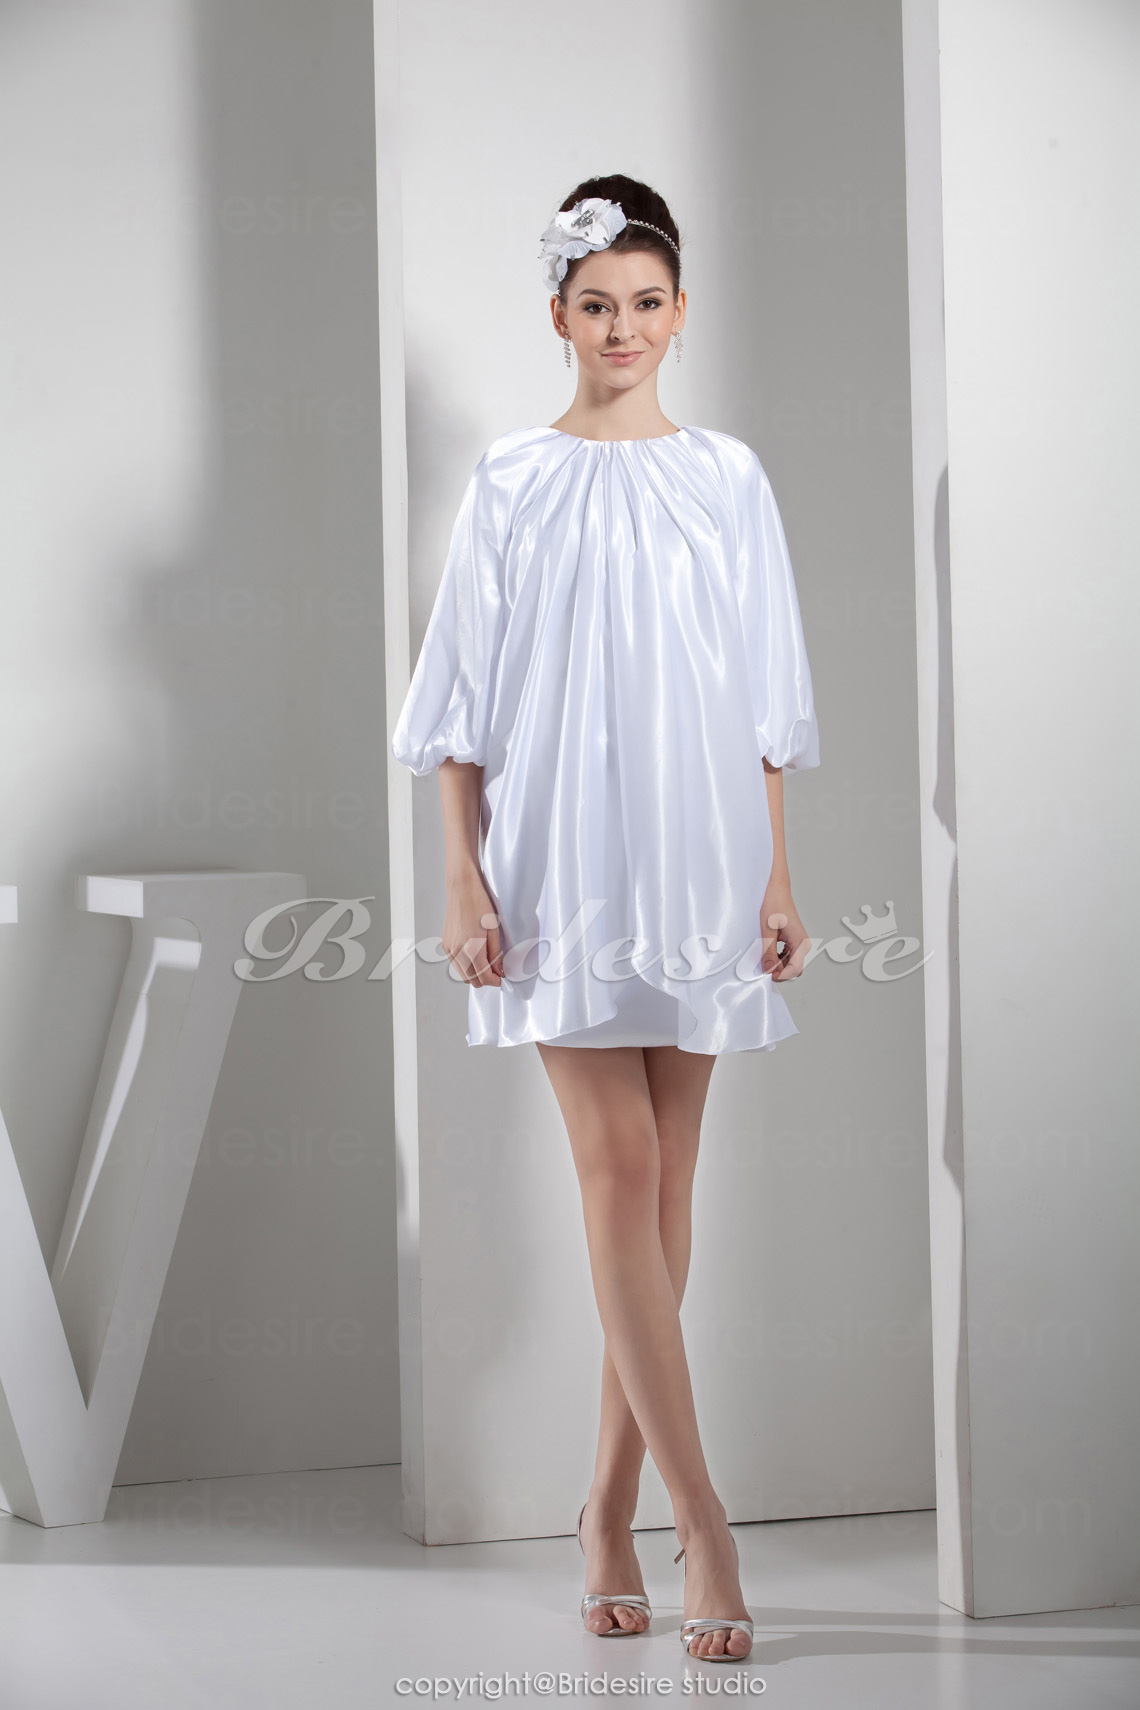 Sheath/Column Jewel Short/Mini Half Sleeve Taffeta Dress